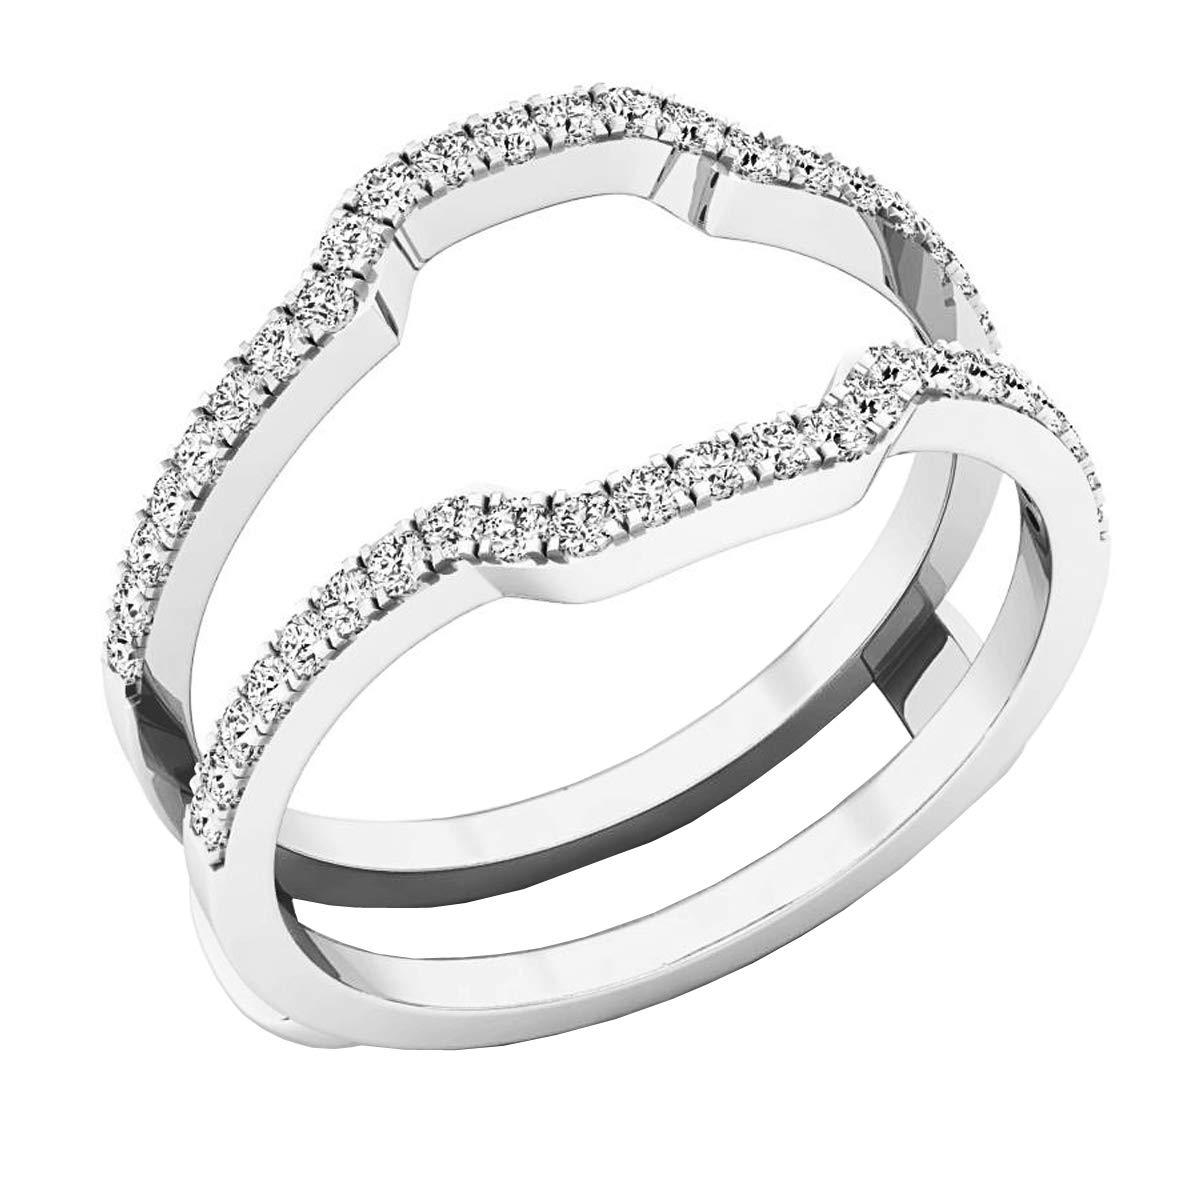 0.33 Carat (cttw) Round Diamond Ladies Wedding Band Enhancer Guard Ring 1/3 CT, 10K White Gold, Size 7 by Dazzlingrock Collection